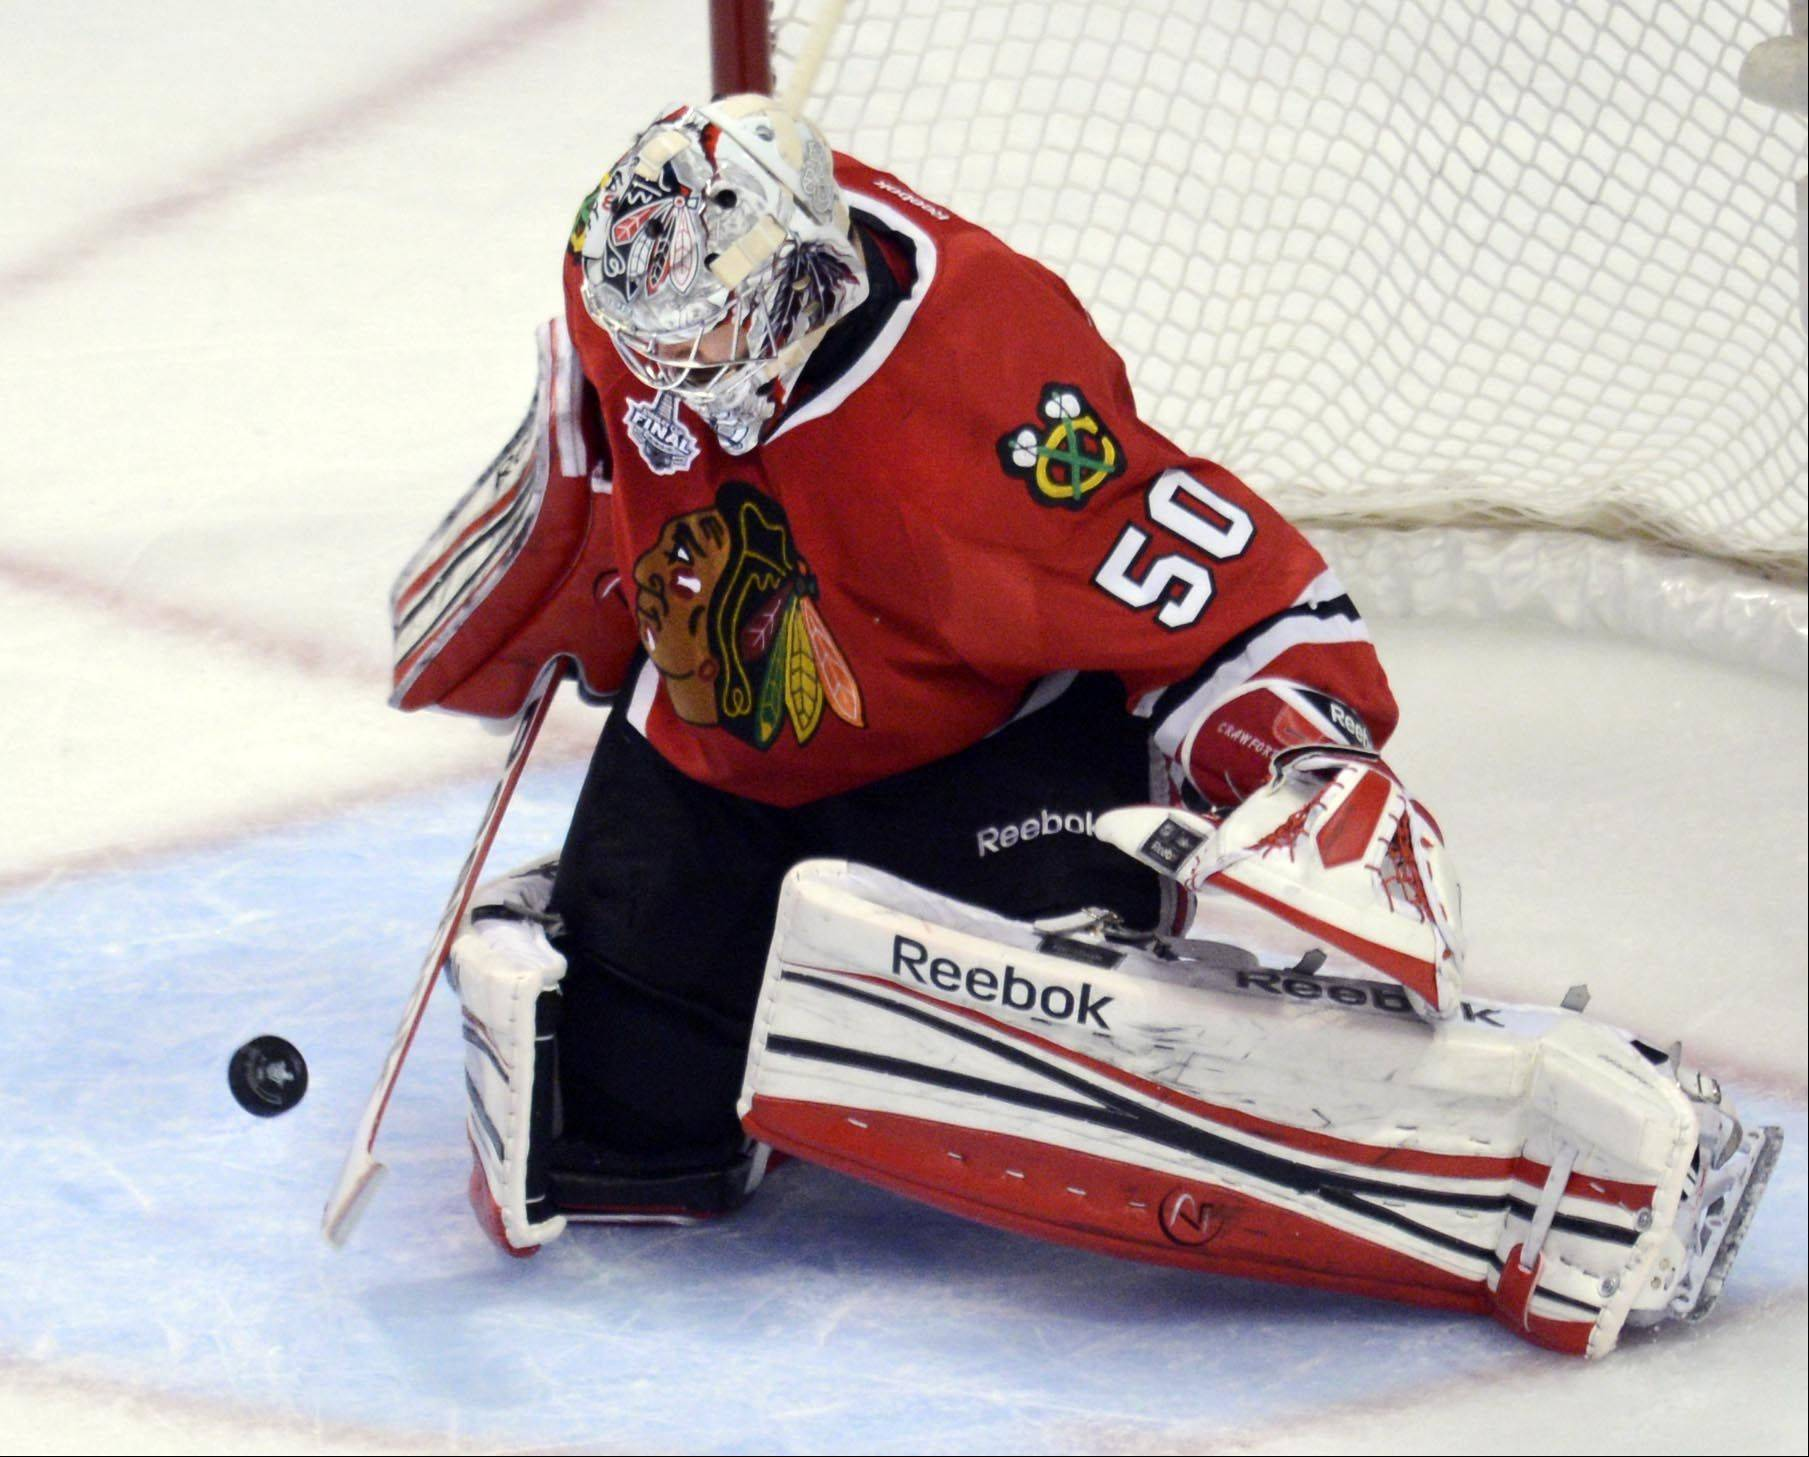 Olympics could be in future for Blackhawks' Crawford